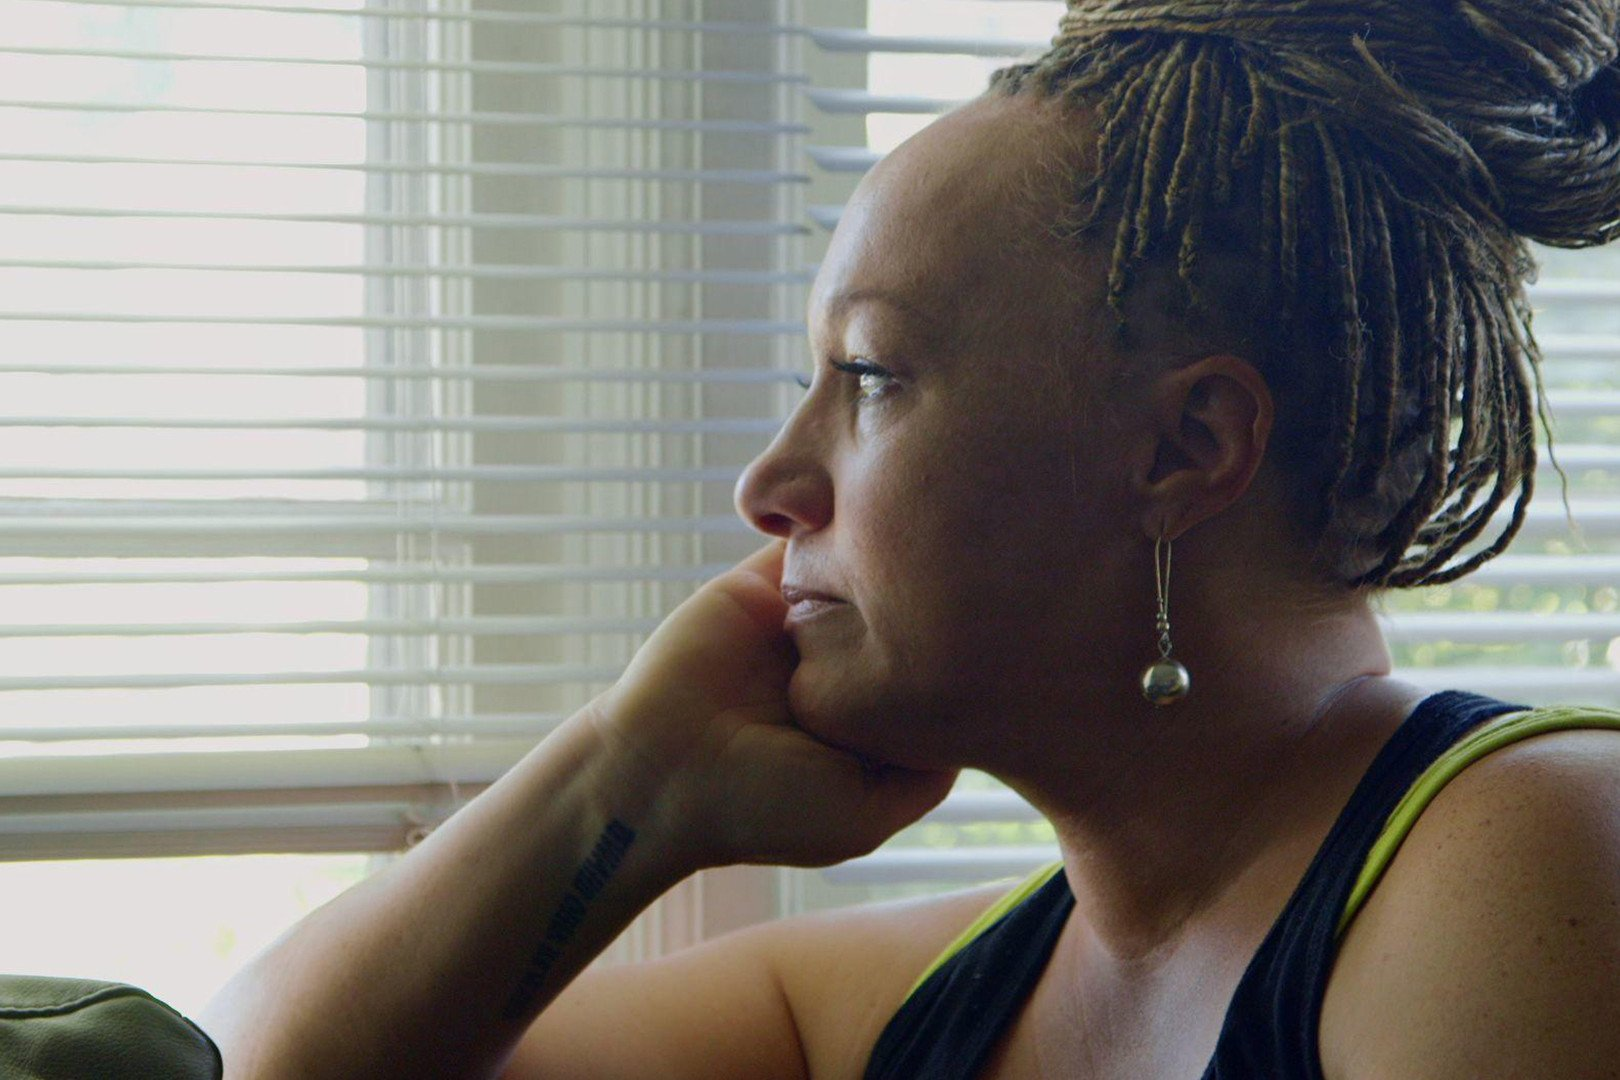 Rachel Dolezal hasn't changed a bit in new documentary trailer